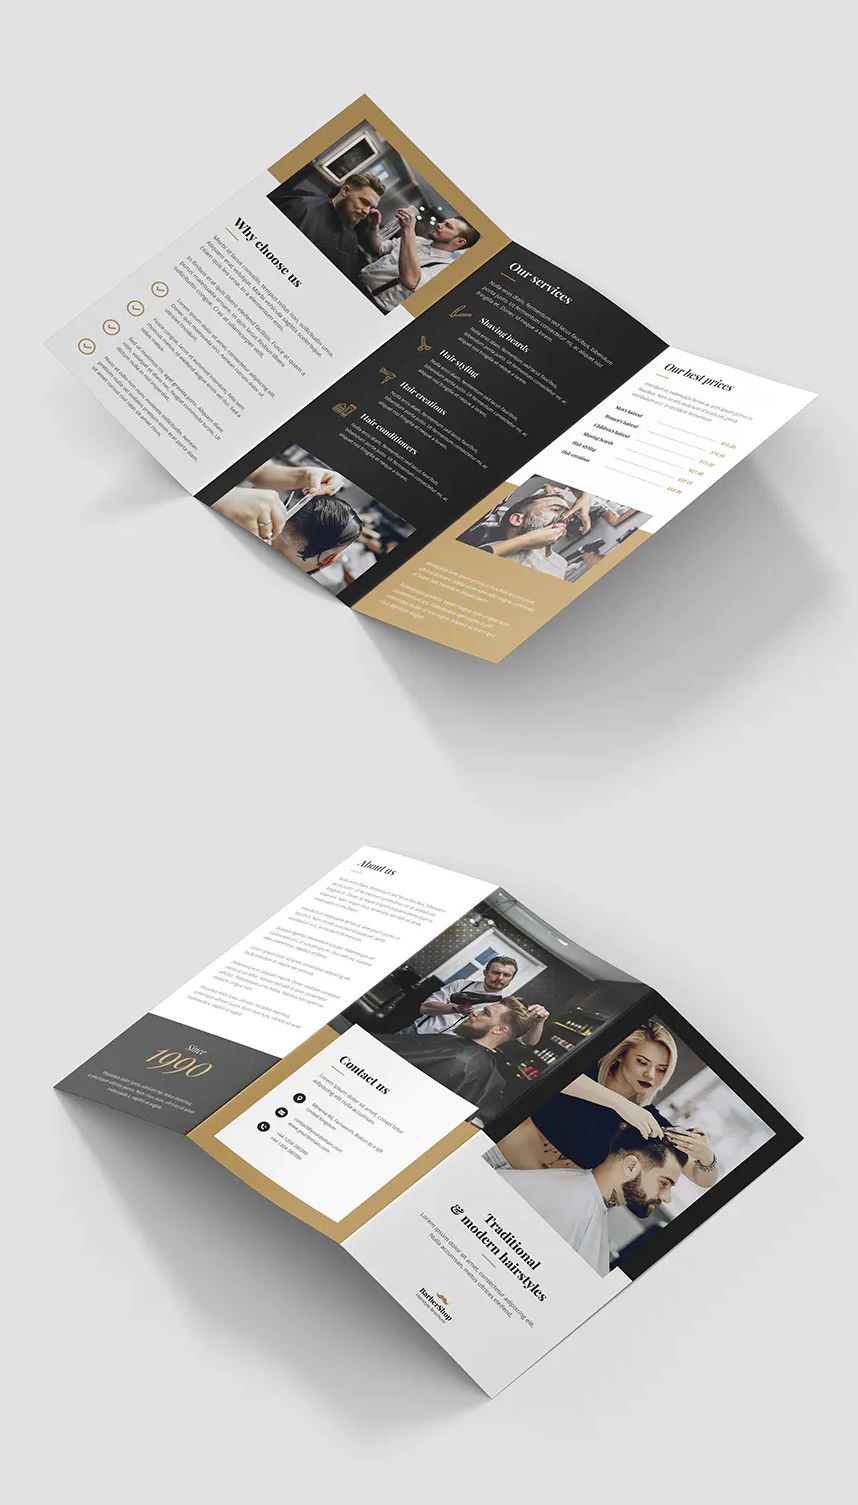 Barber Shop TriFold Brochure Template PSD Trifold